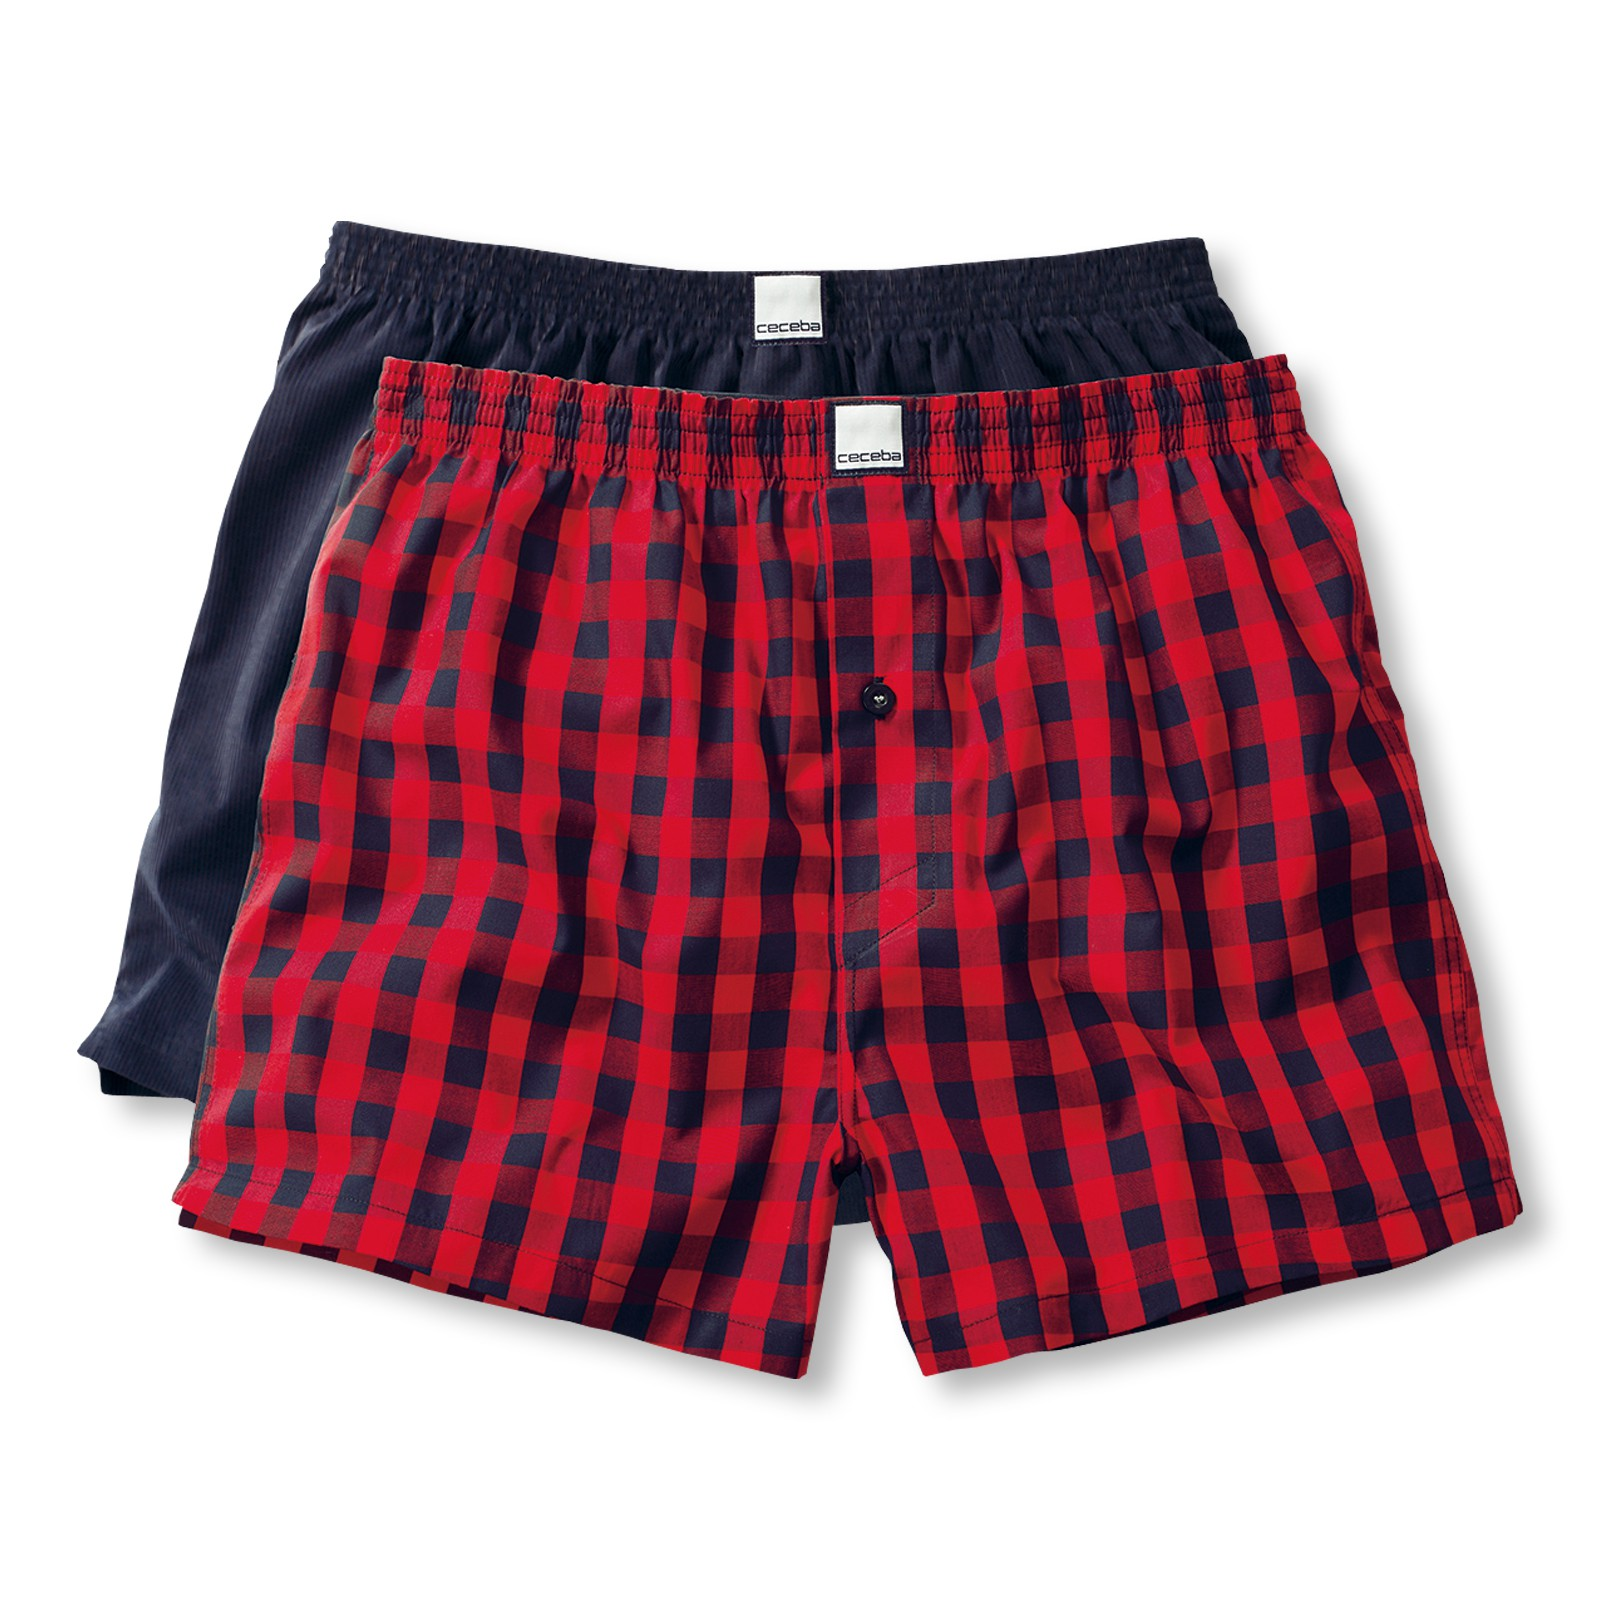 2er Pack Ceceba Herren Webboxer 20524 in red-medium check